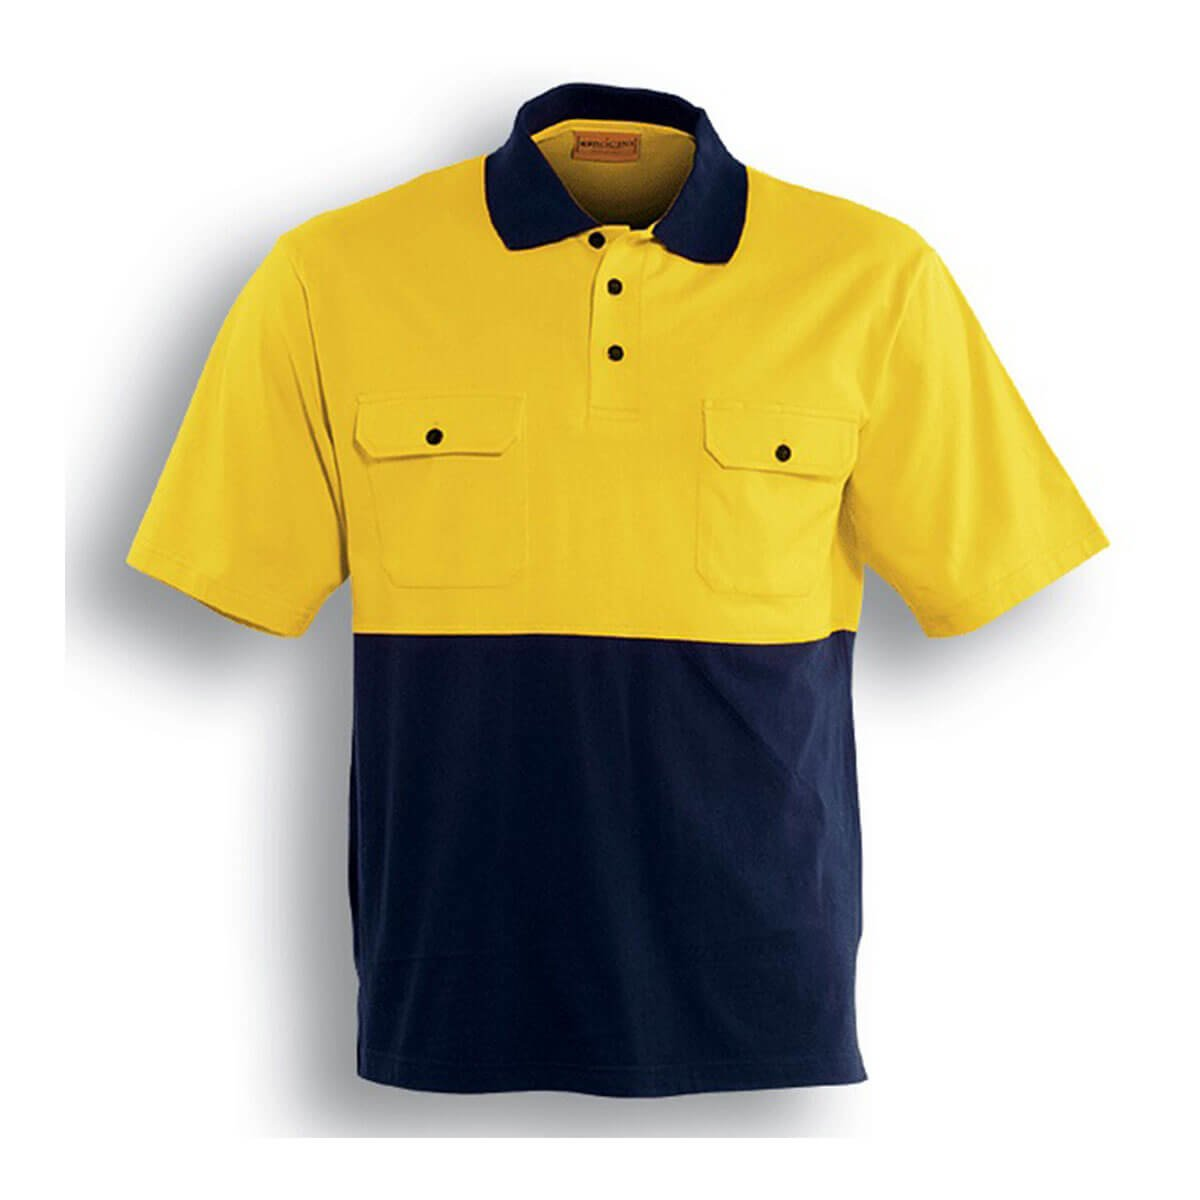 HI-VIS COTTON JERSEY POLO S/S-Lime / Navy